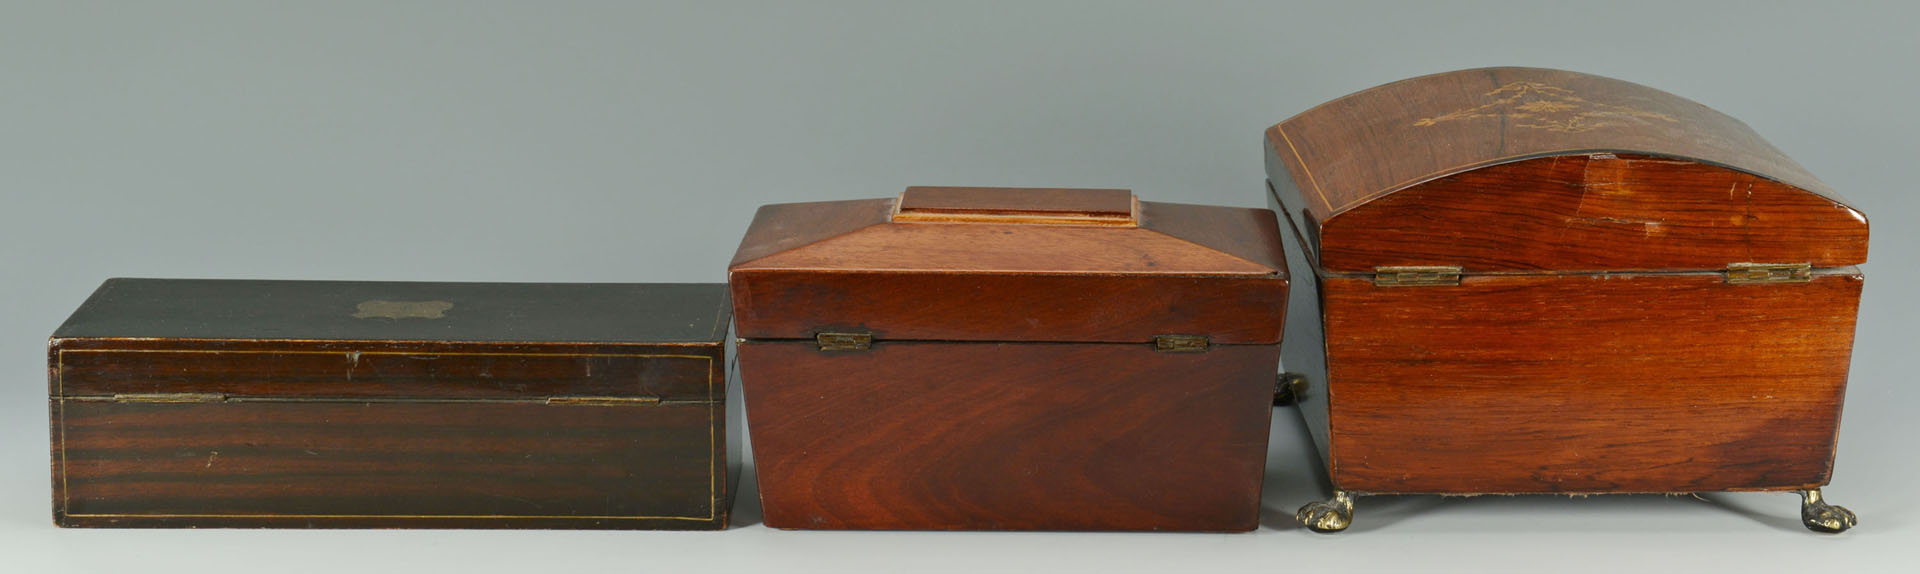 Lot 126: Grouping of 3 Desk Storage Boxes, inlaid